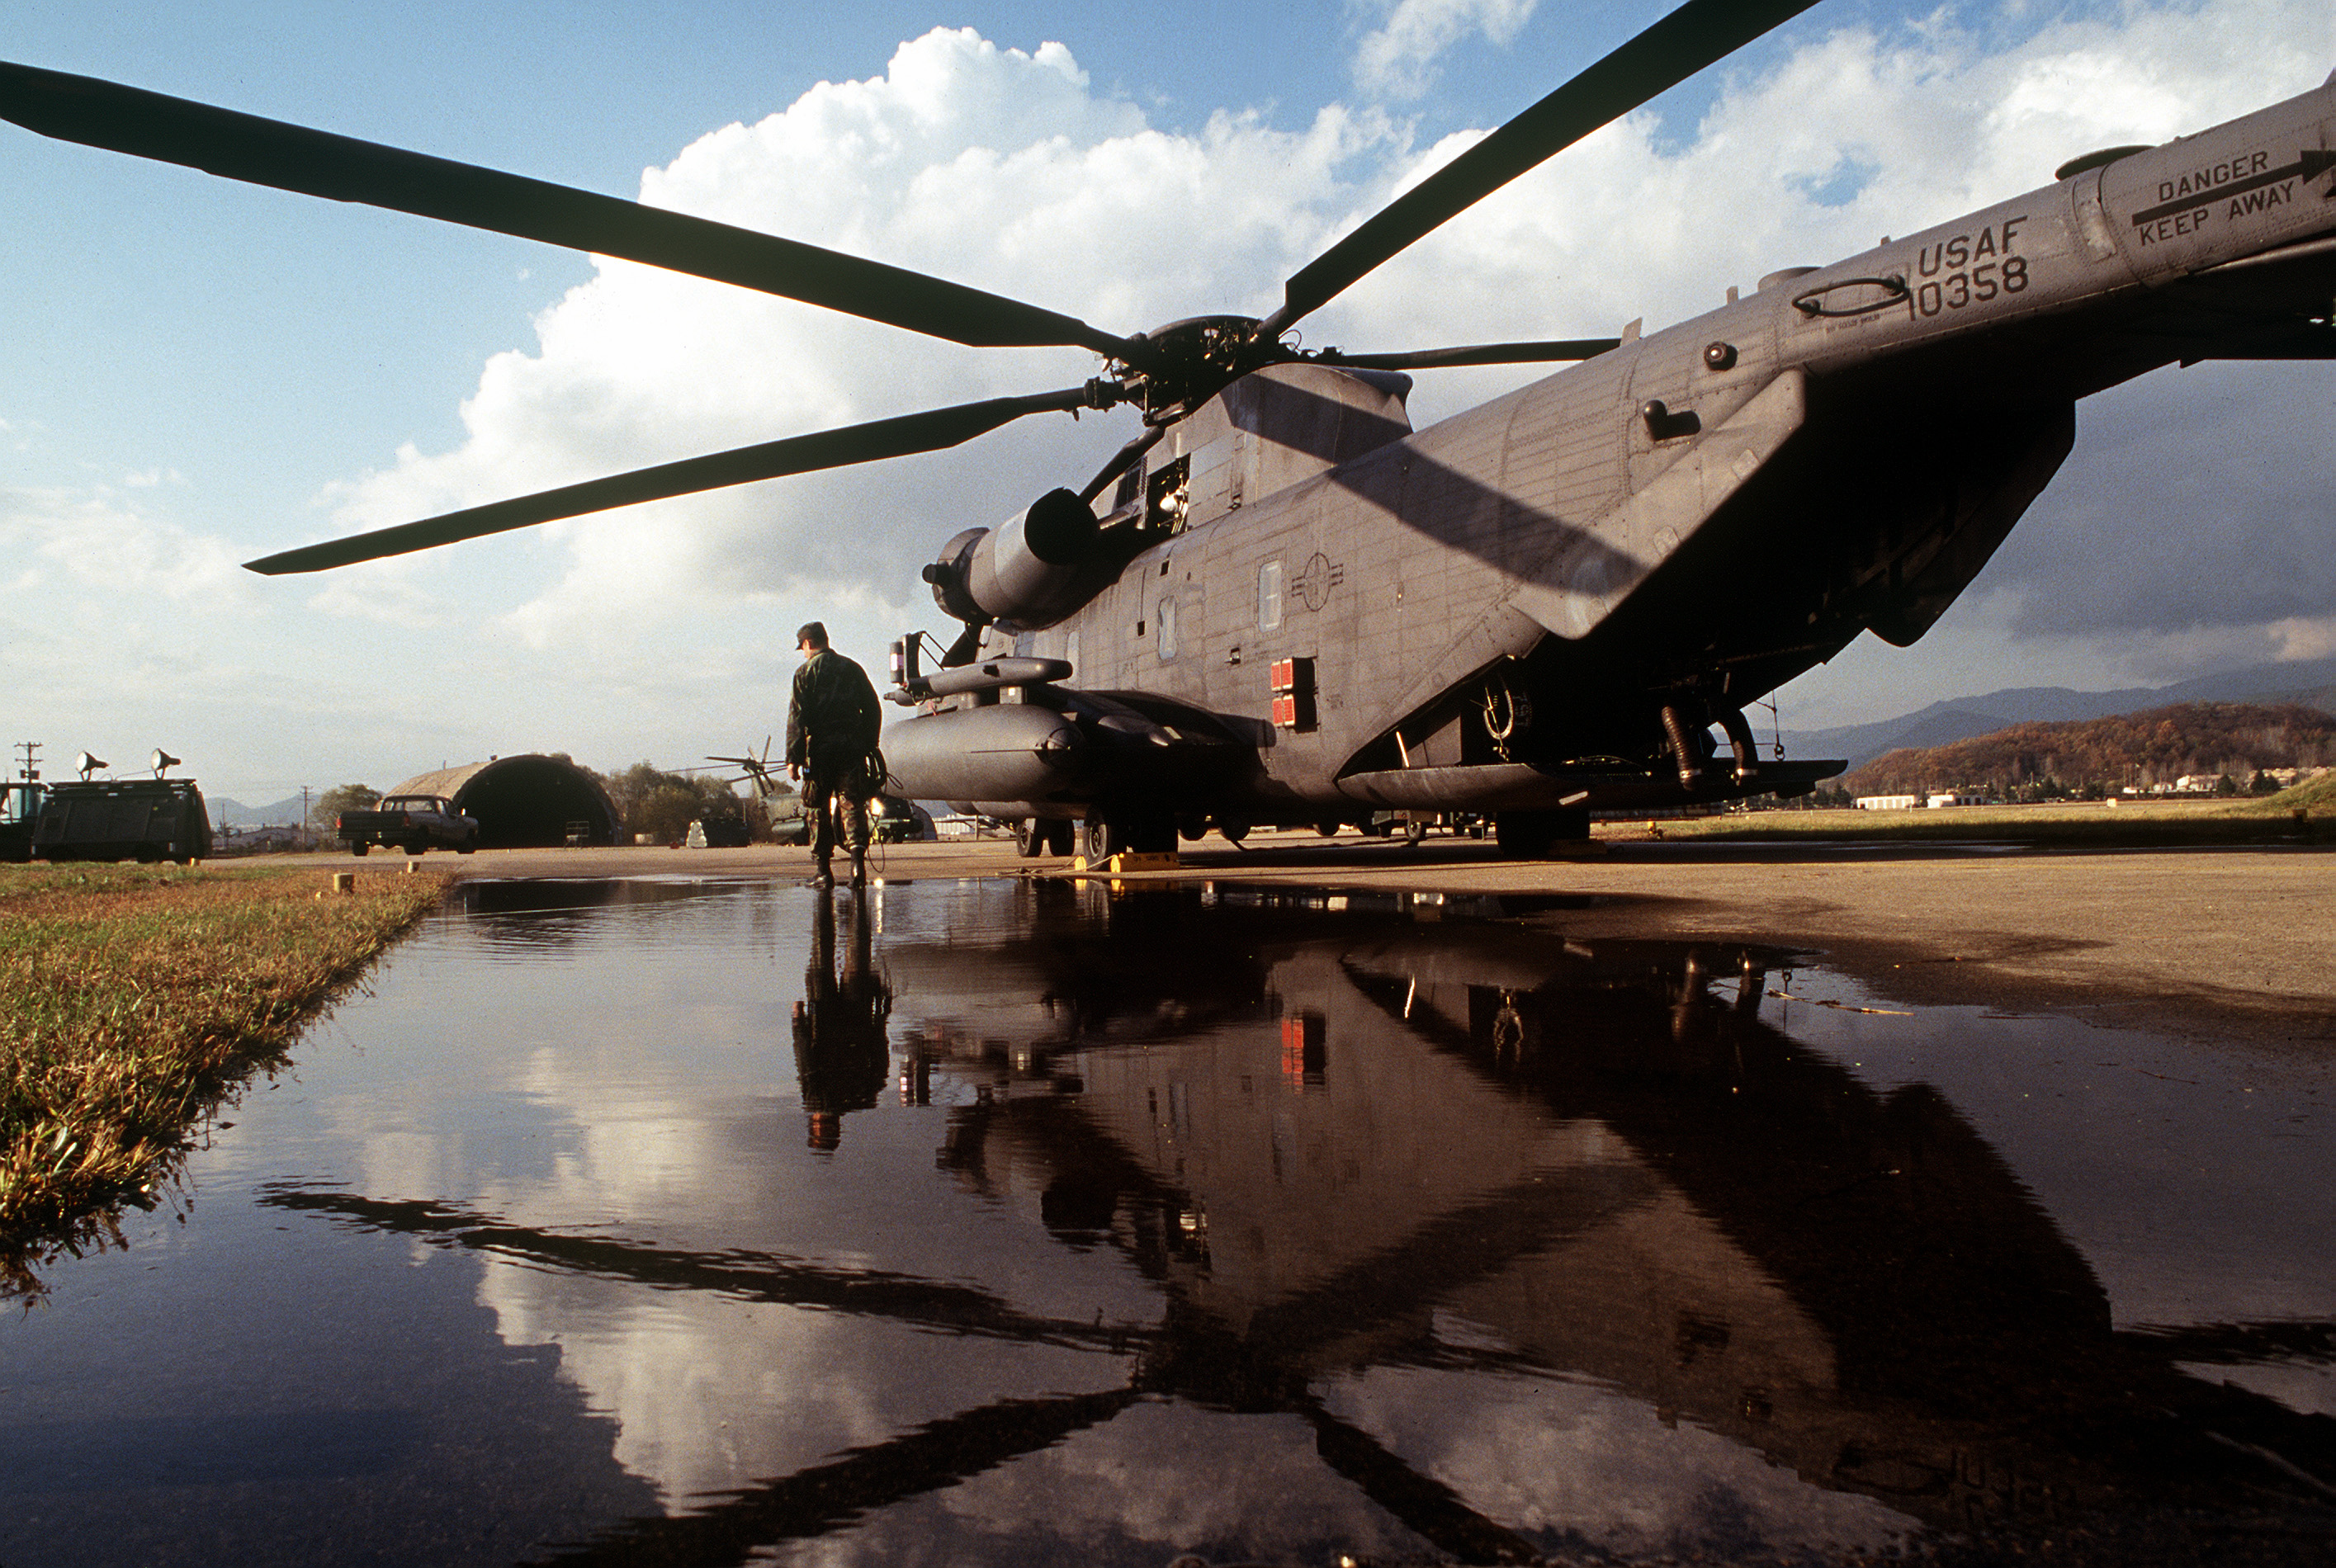 helicopter flight video with File An Mh 53j Pave Low Iii Helicopter From The 31st Special Operations Squadron At Osan Air Base Sits On The Flightline At Taegu Air Base  South Korea In Support Of Foal Eagle  2793 Df St 94 01932 on V 22 Osprey Starts Us Aircraft Carrier Tests likewise De Havilland V ire Jet moreover Blue Angels Stunt Looks Insanely Dangerous additionally Cirrus Sr 22 Gts as well File An MH 53J Pave Low III helicopter from the 31st Special Operations Squadron at Osan Air Base sits on the flightline at Taegu Air Base  South Korea in support of Foal Eagle  2793 DF ST 94 01932.